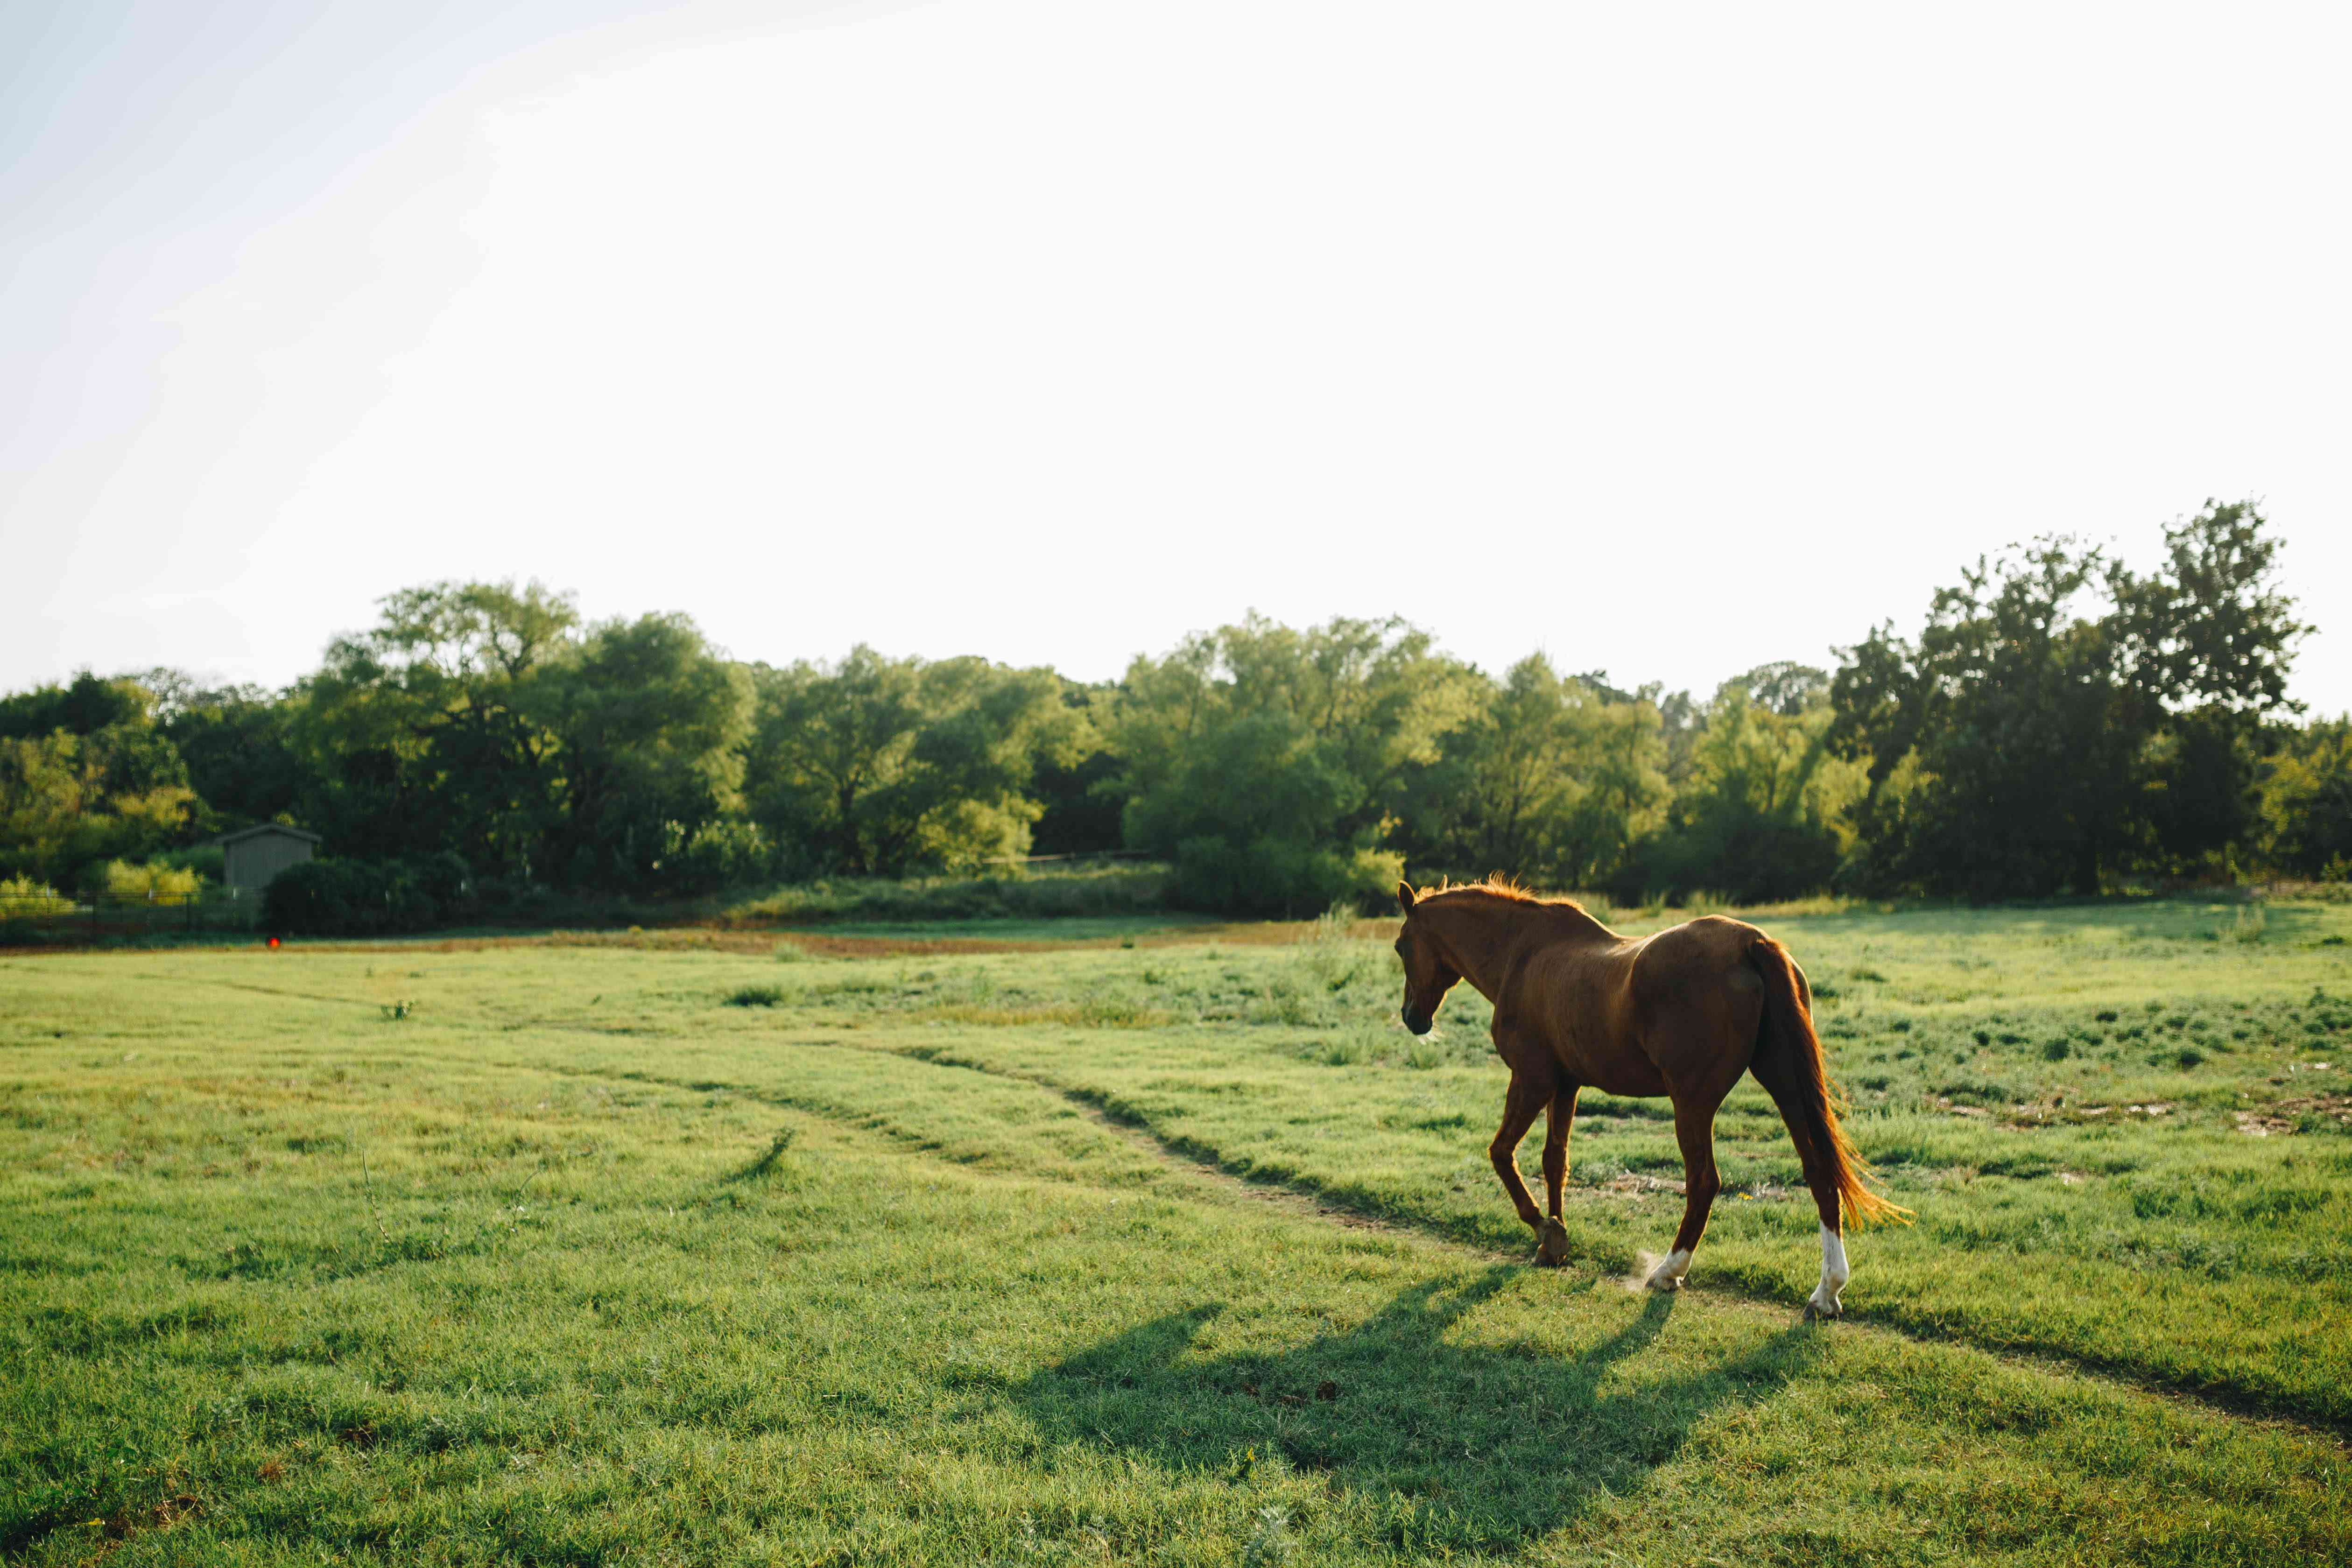 brown horse scampers in open field